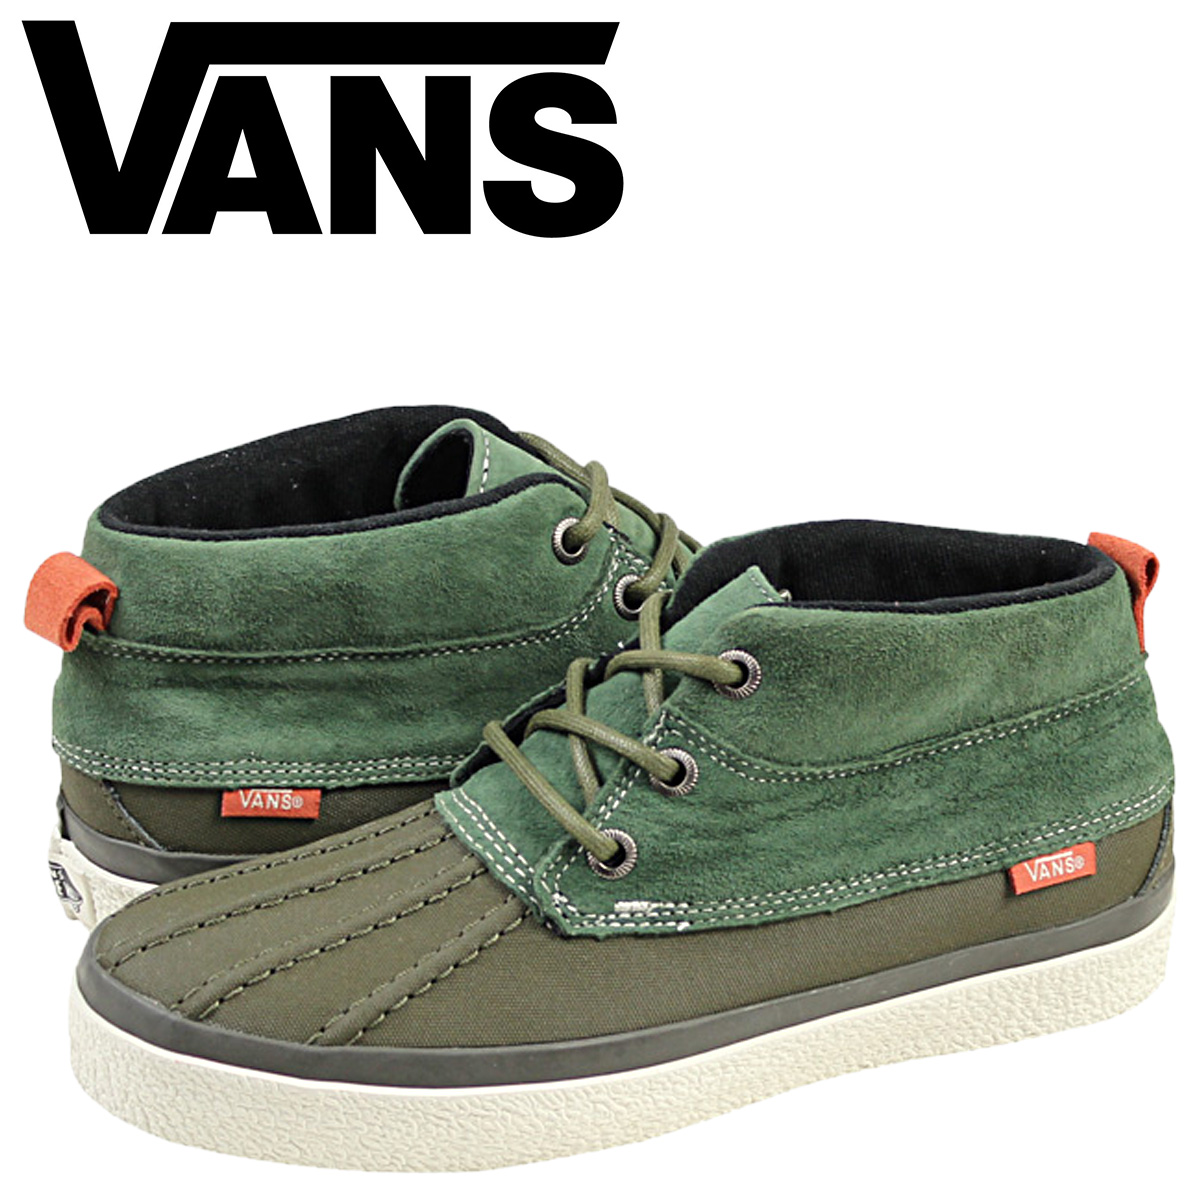 0e4a2868d3 Whats up Sports   SOLD OUT  VANS vans chukka boots sneakers CHUKKA ...